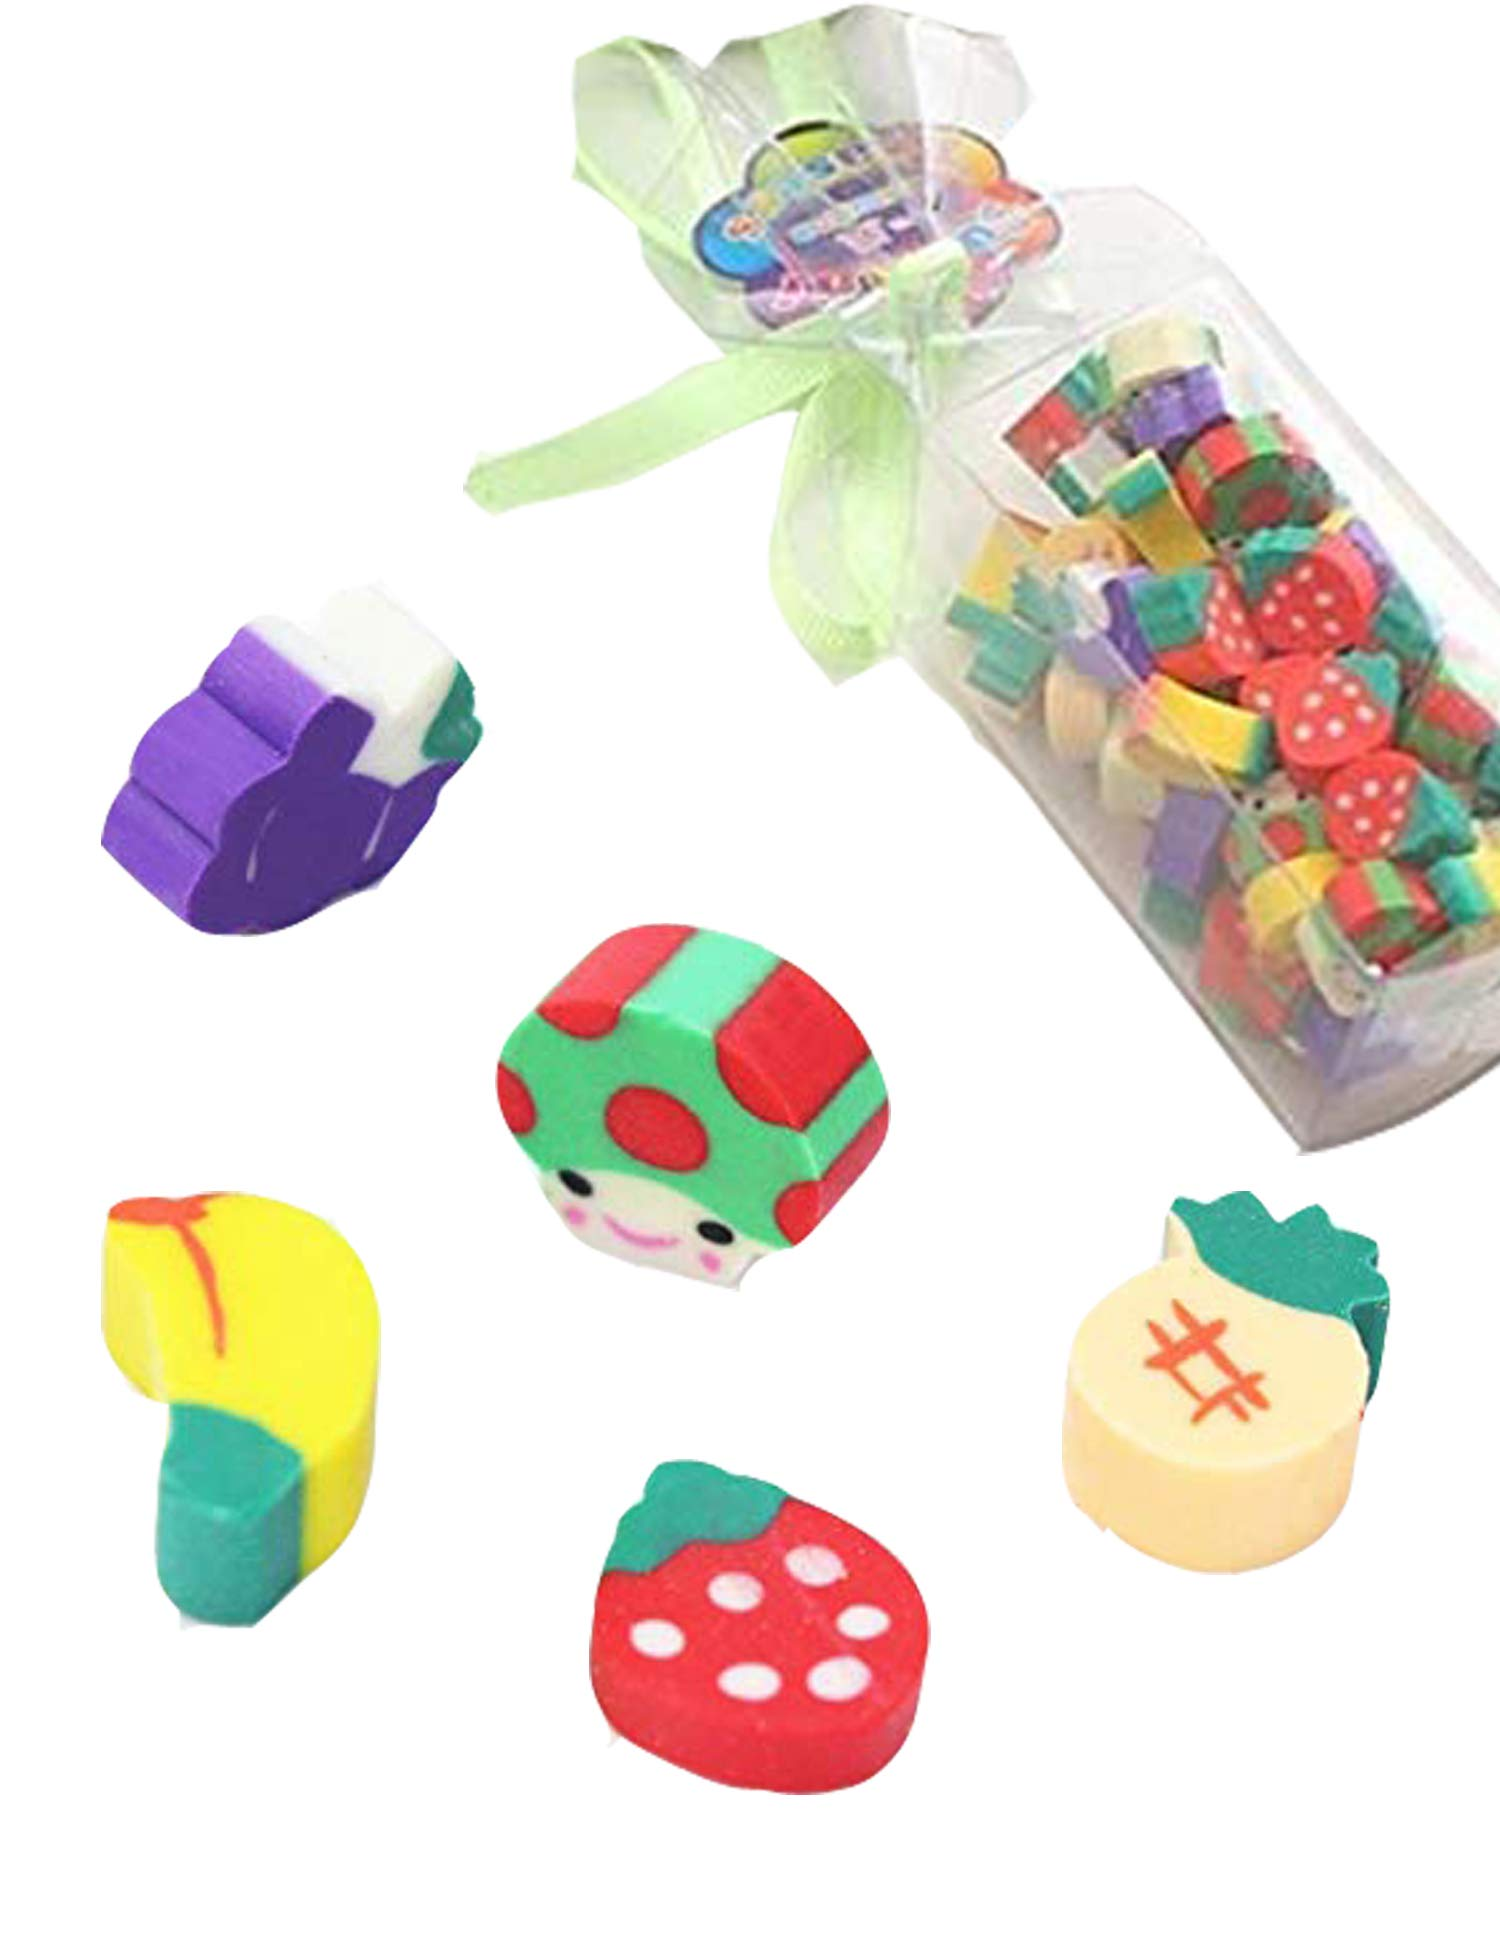 Goodfans 50 Pcs/bag Children Students Casual Cute Mini Fruit Toy Eraser Stationery Tool Cartoon Toy Pen Erasers by Goodfans (Image #1)